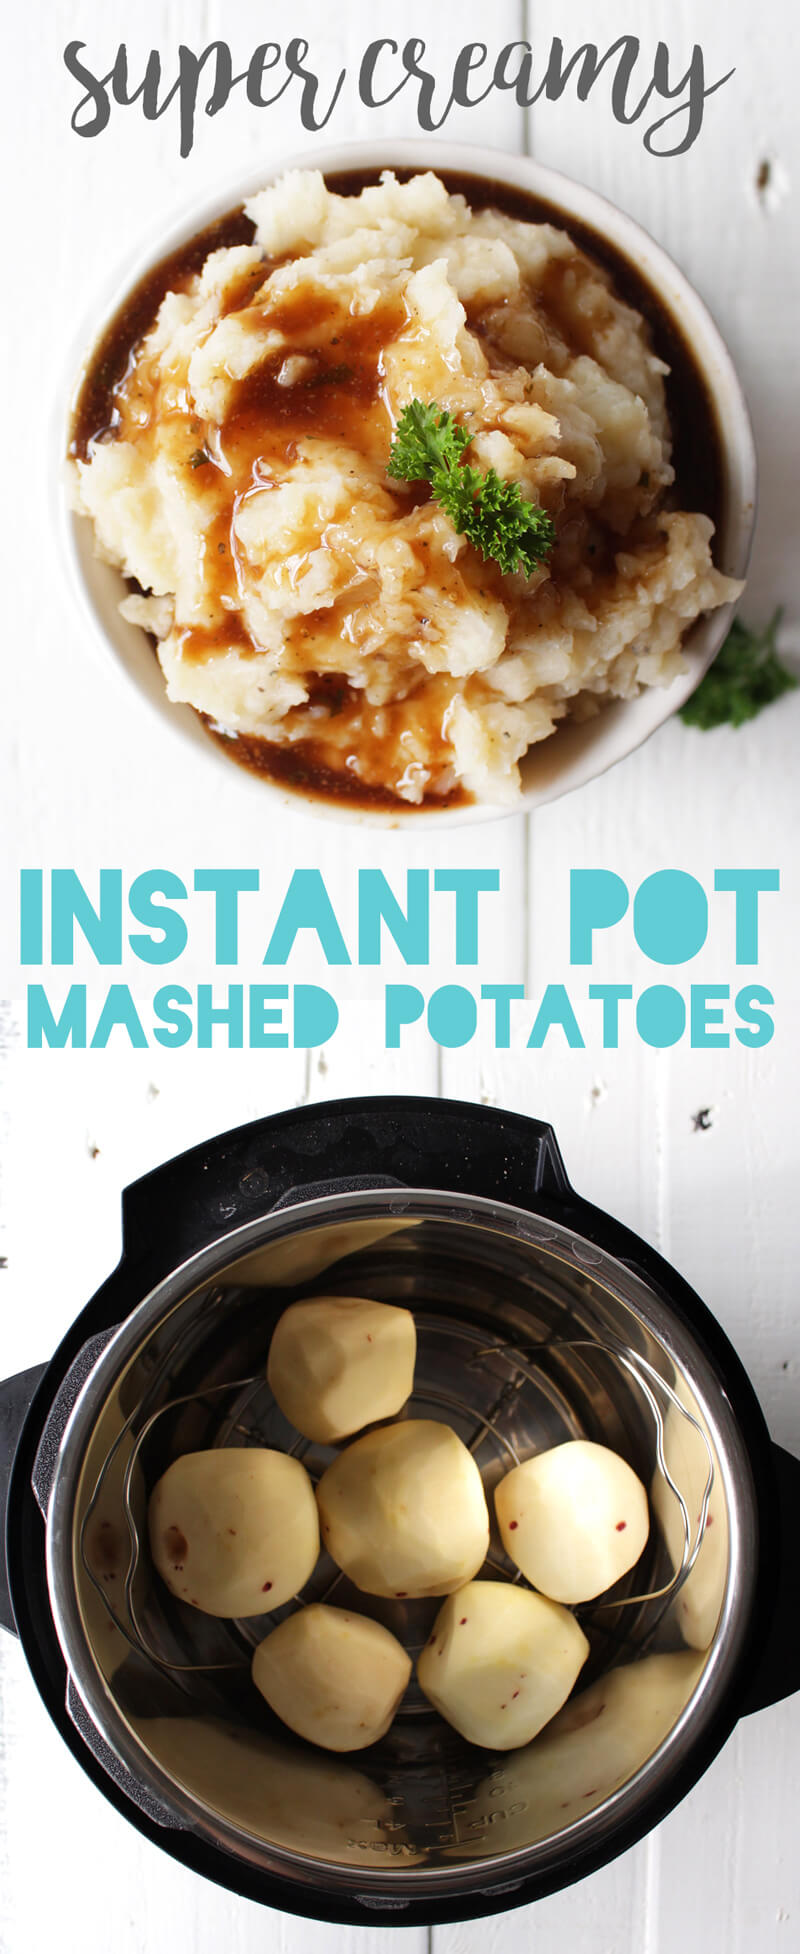 These are seriously the creamiest mashed potatoes EVER, thanks to the instant pot - without any oil, butter, or cream! Totally vegan and healthy.